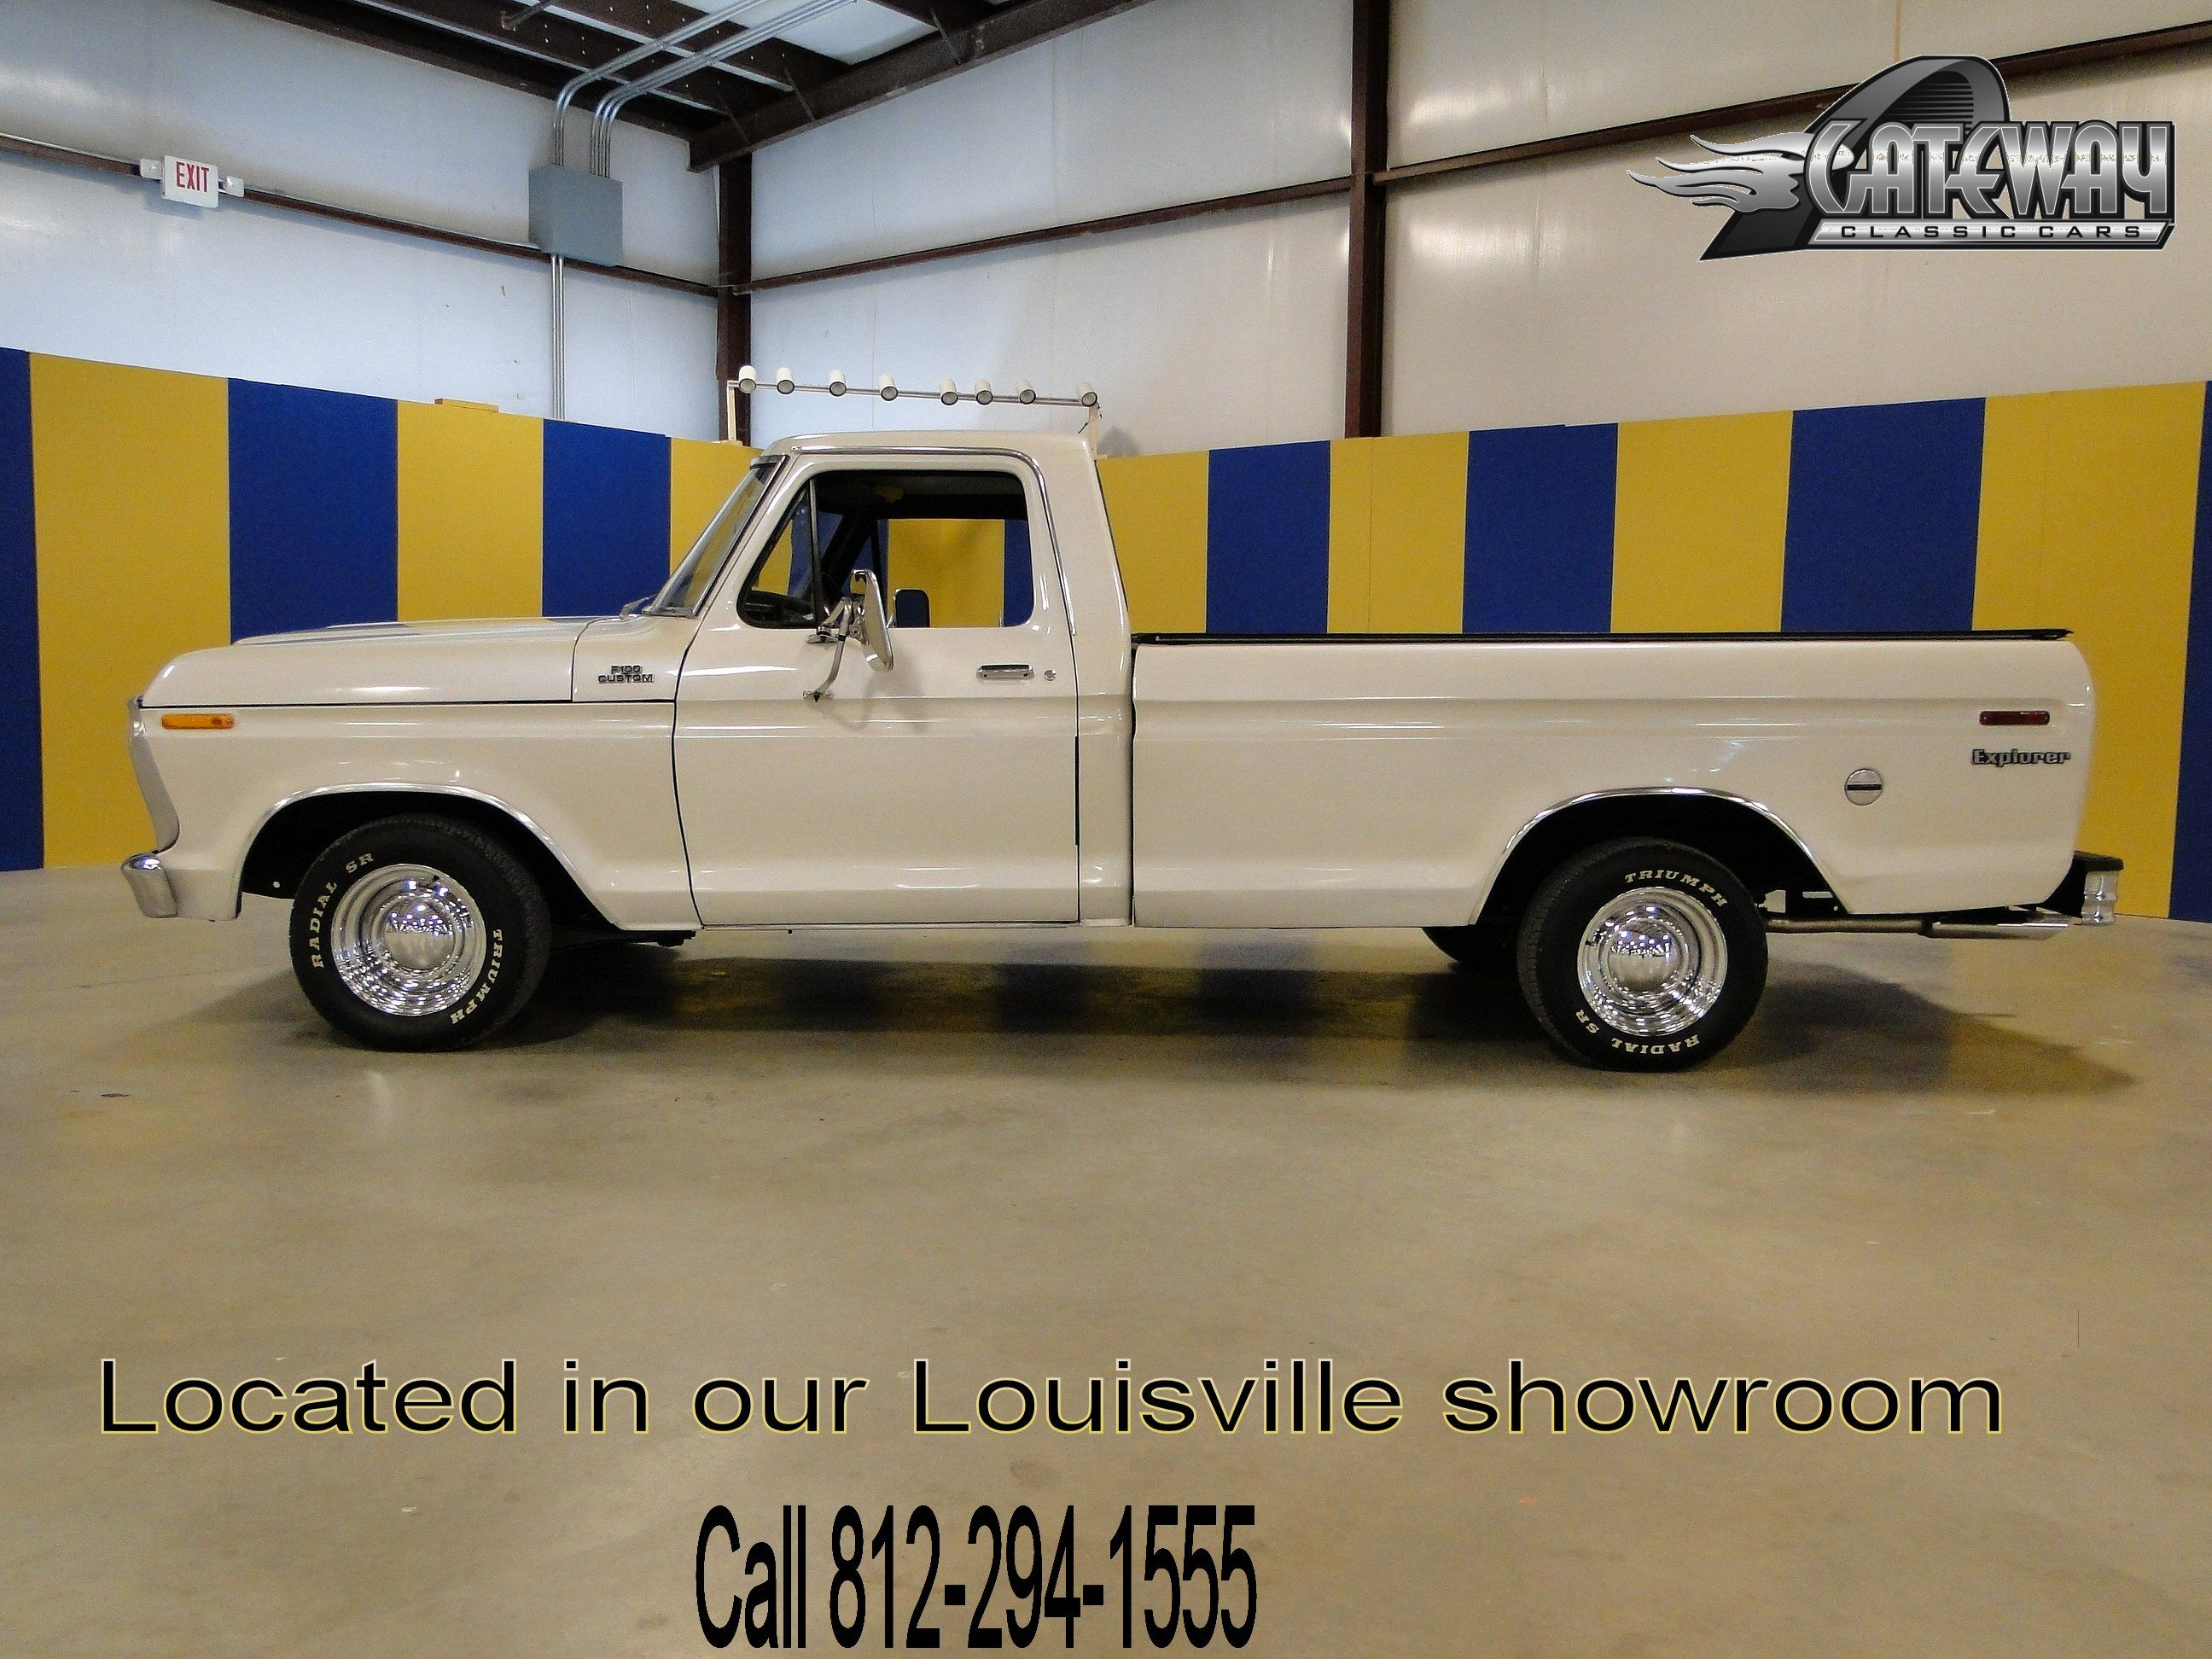 Home by year 1979 cars 1979 trucks car pictures - 1973 Ford F100 1973 Ford F100 For Sale Gateway Classic Cars